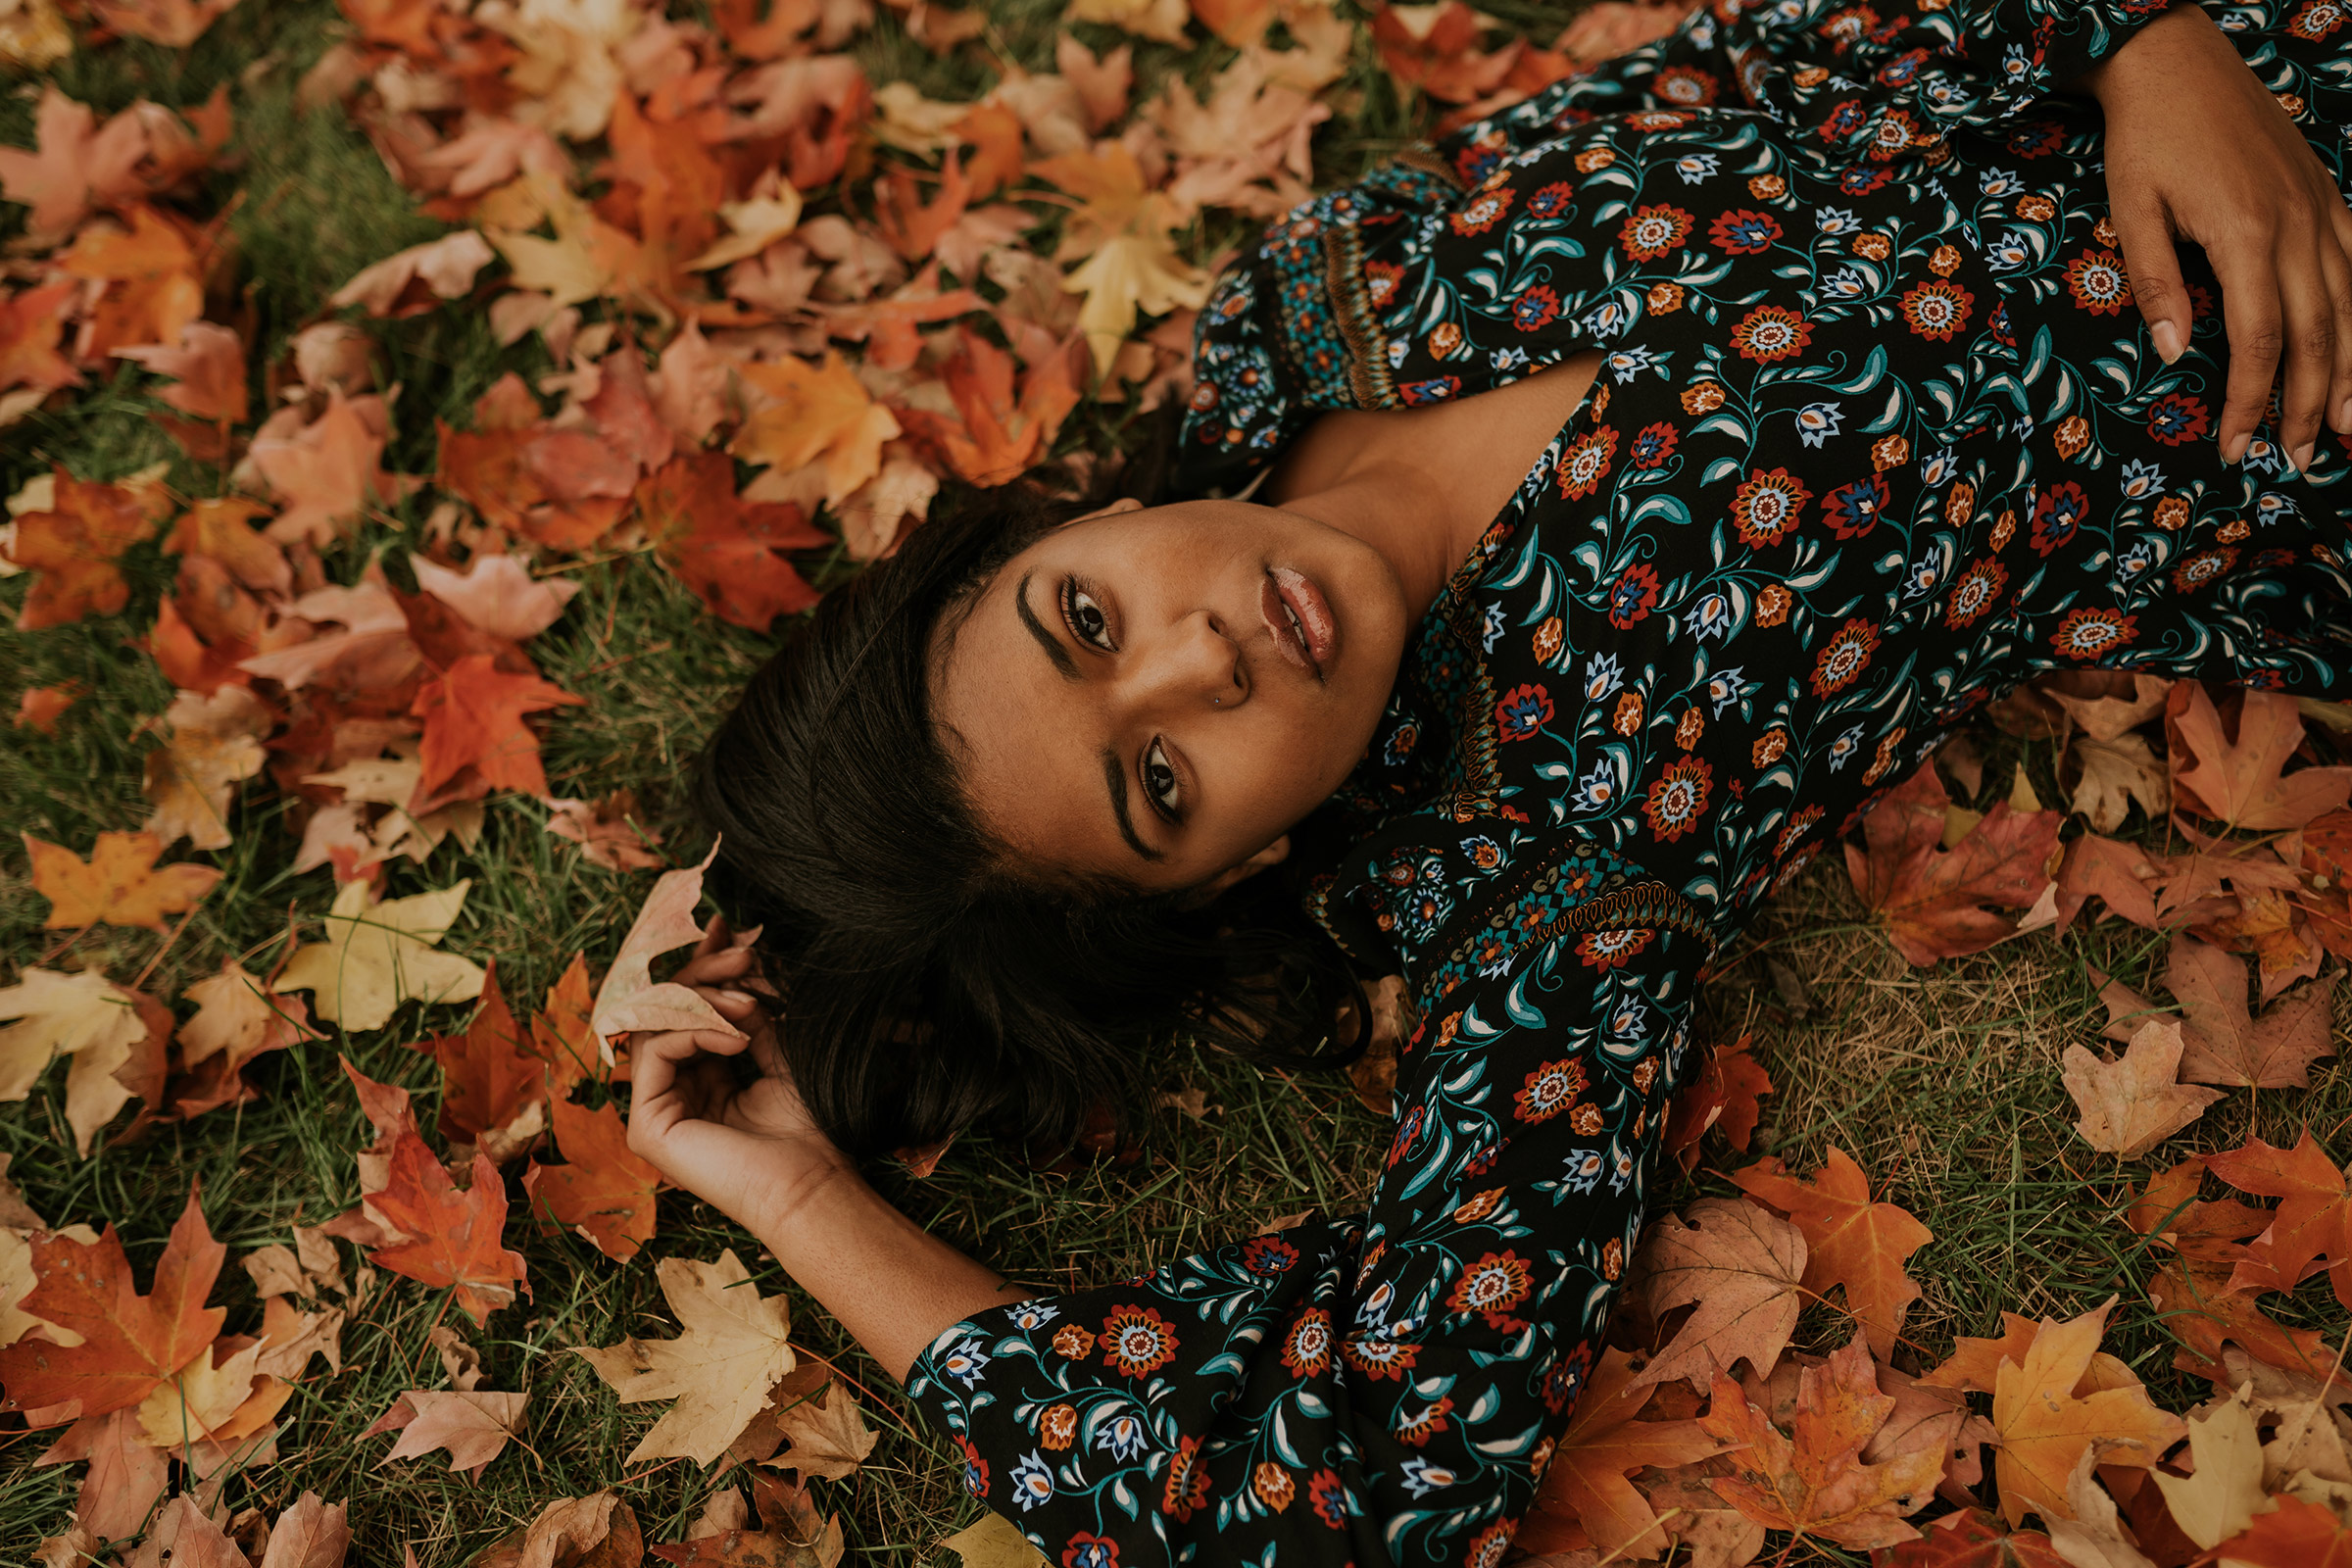 devina-girl-laying-in-fall-leaves-senior-roosevelt-high-school-desmoines-iowa-raelyn-ramey-photography-142.jpg